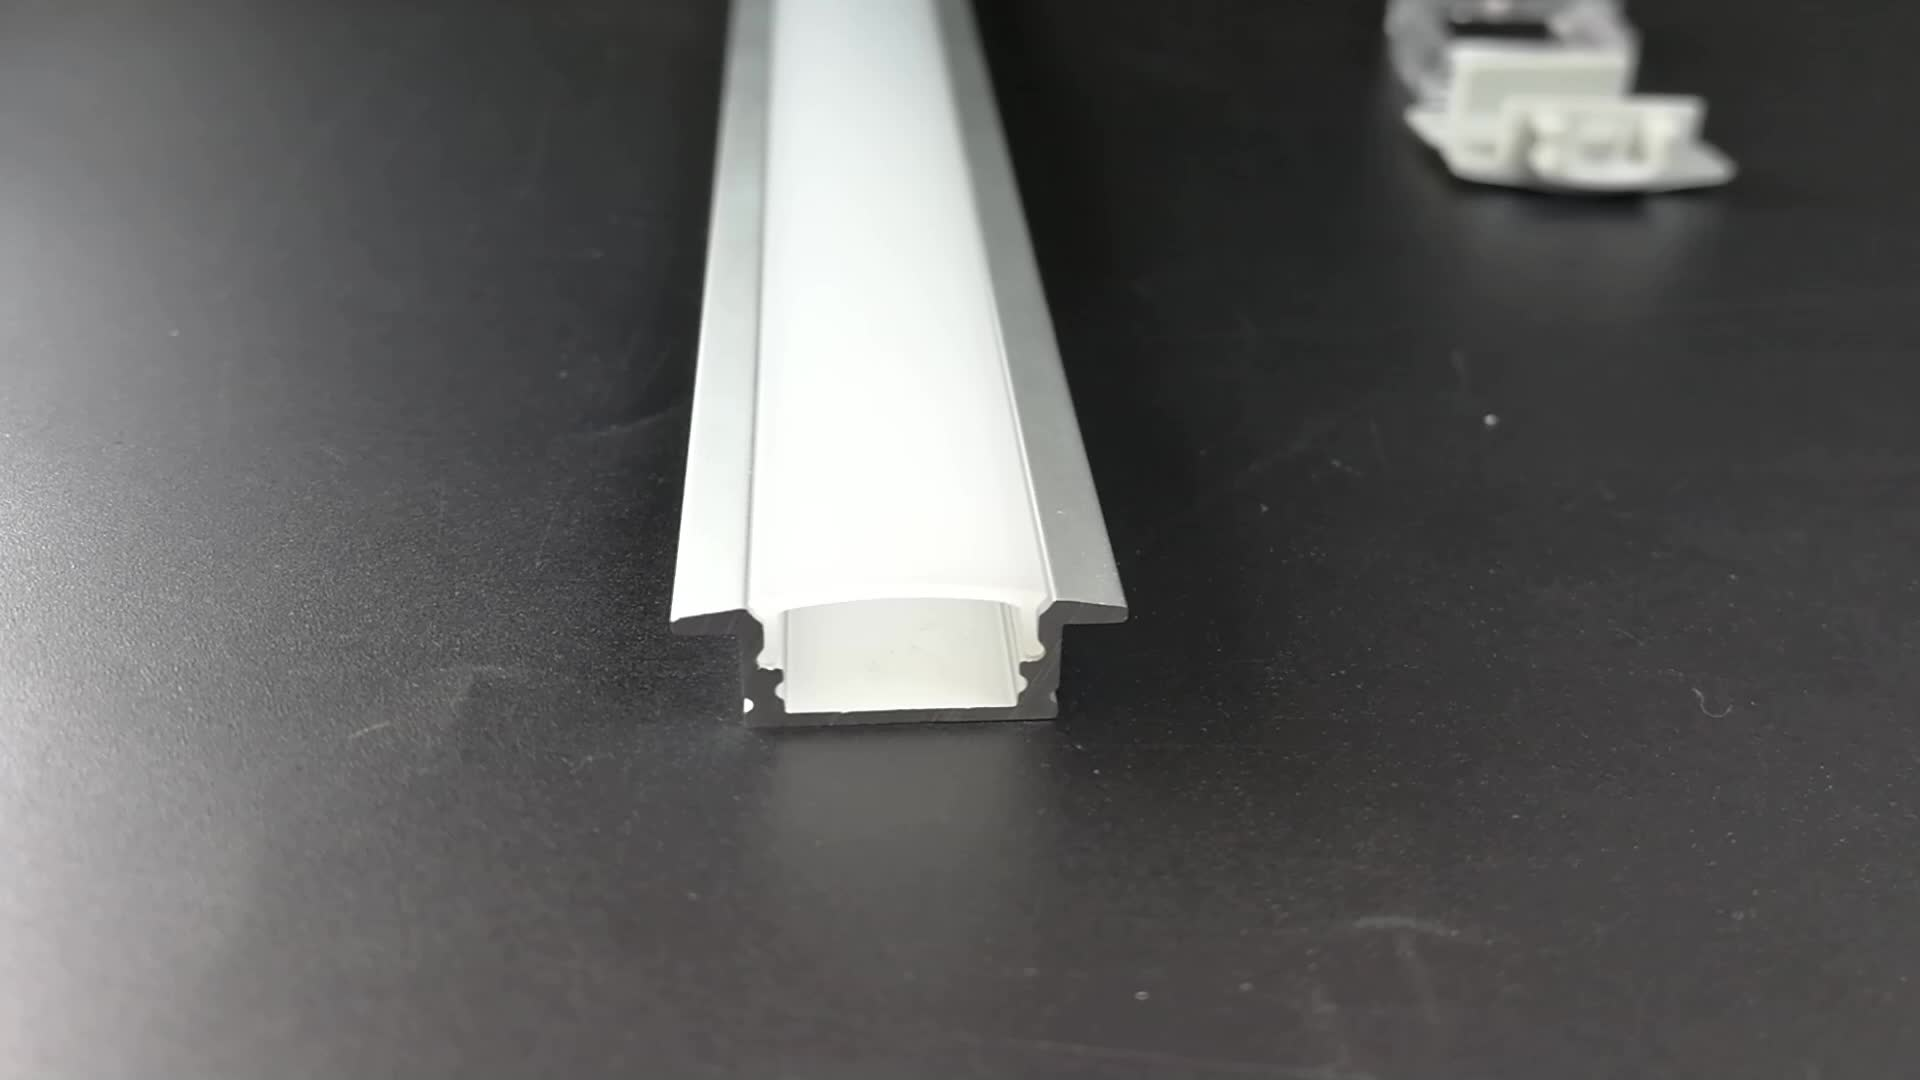 Linear Aluminum Led Profile with Diffuser Cover for guide Lighting Effect